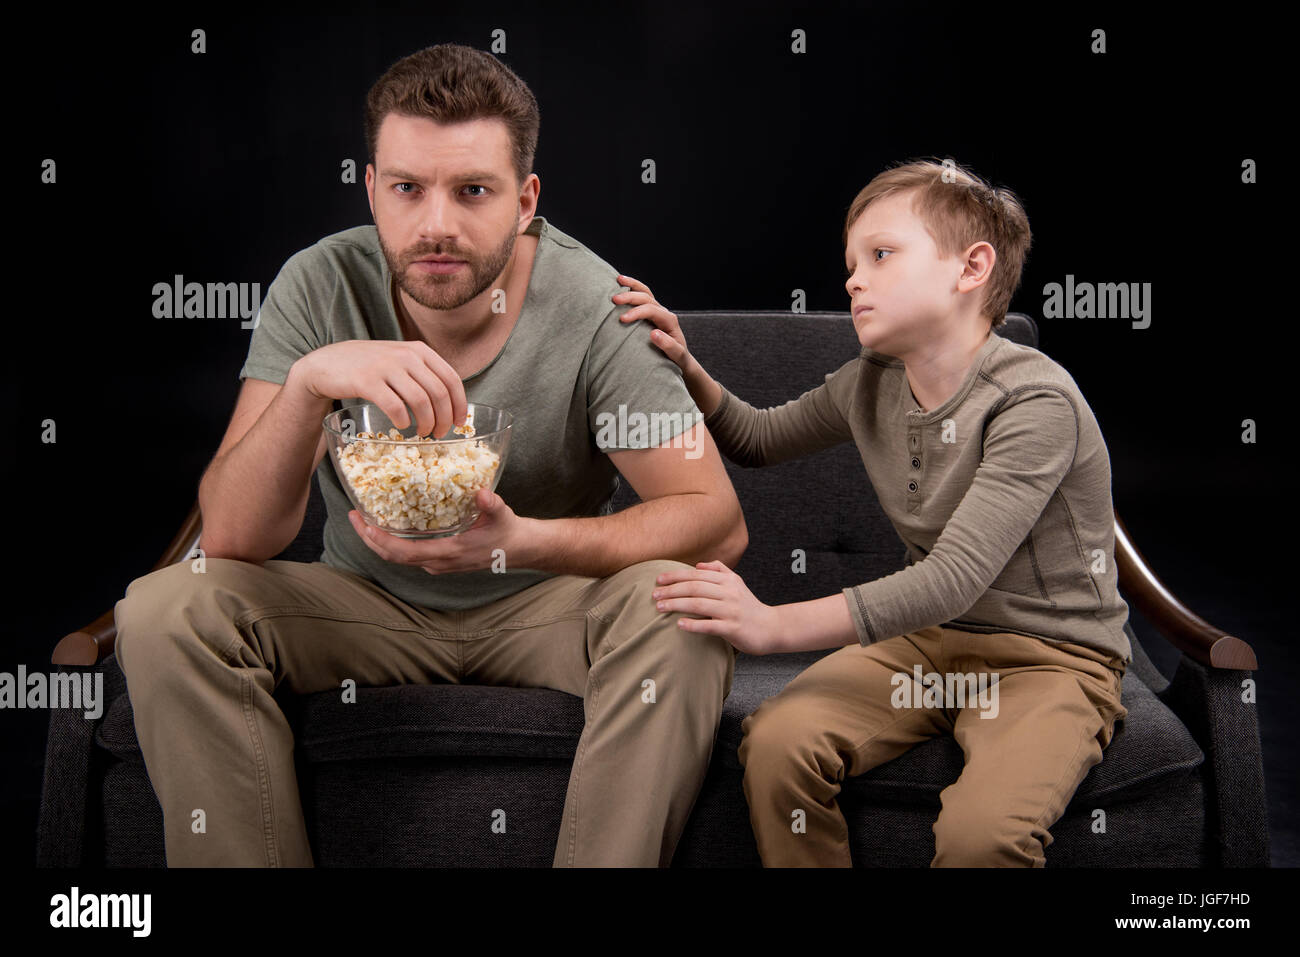 Little boy trying to talk with father eating popcorn and watching tv on sofa, family problems concept - Stock Image